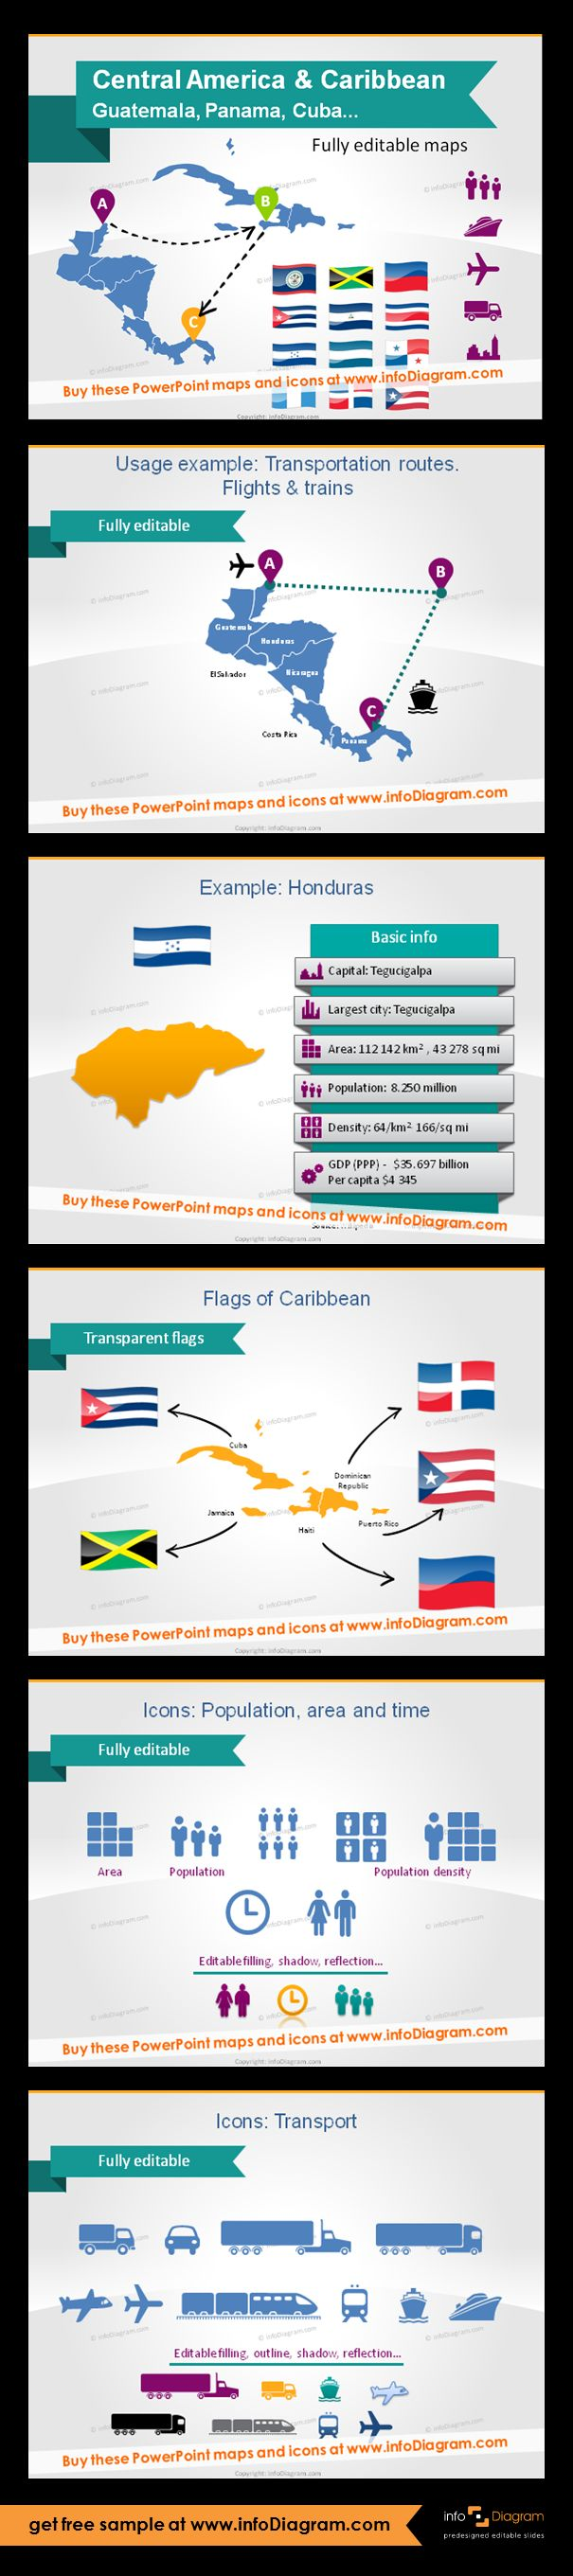 Central America and Caribbean countries - editable PowerPoint maps, localization and transport icons, country statistics. Fully editable maps, icons, arrows. Transportation routes: flights and trains between the countries, Honduras map with basic information, flags of Caribbean, population, area and time symbols, transportation icons: Truck, Train, Plane, Ship, Bus, Lorry for illustrating logistic routes on the America map.